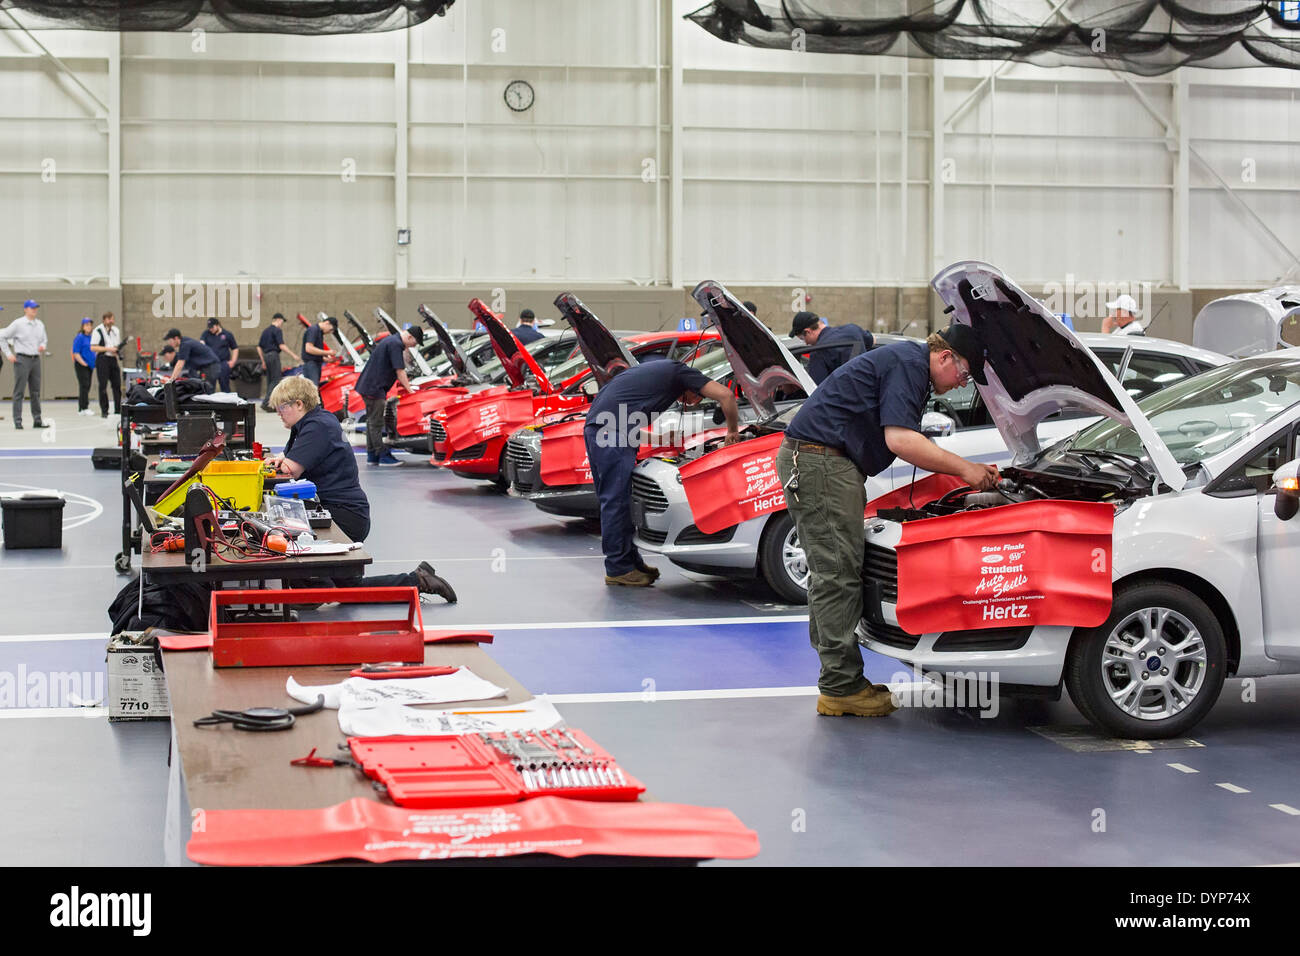 High School Students Participate in Auto Repair Competition - Stock Image